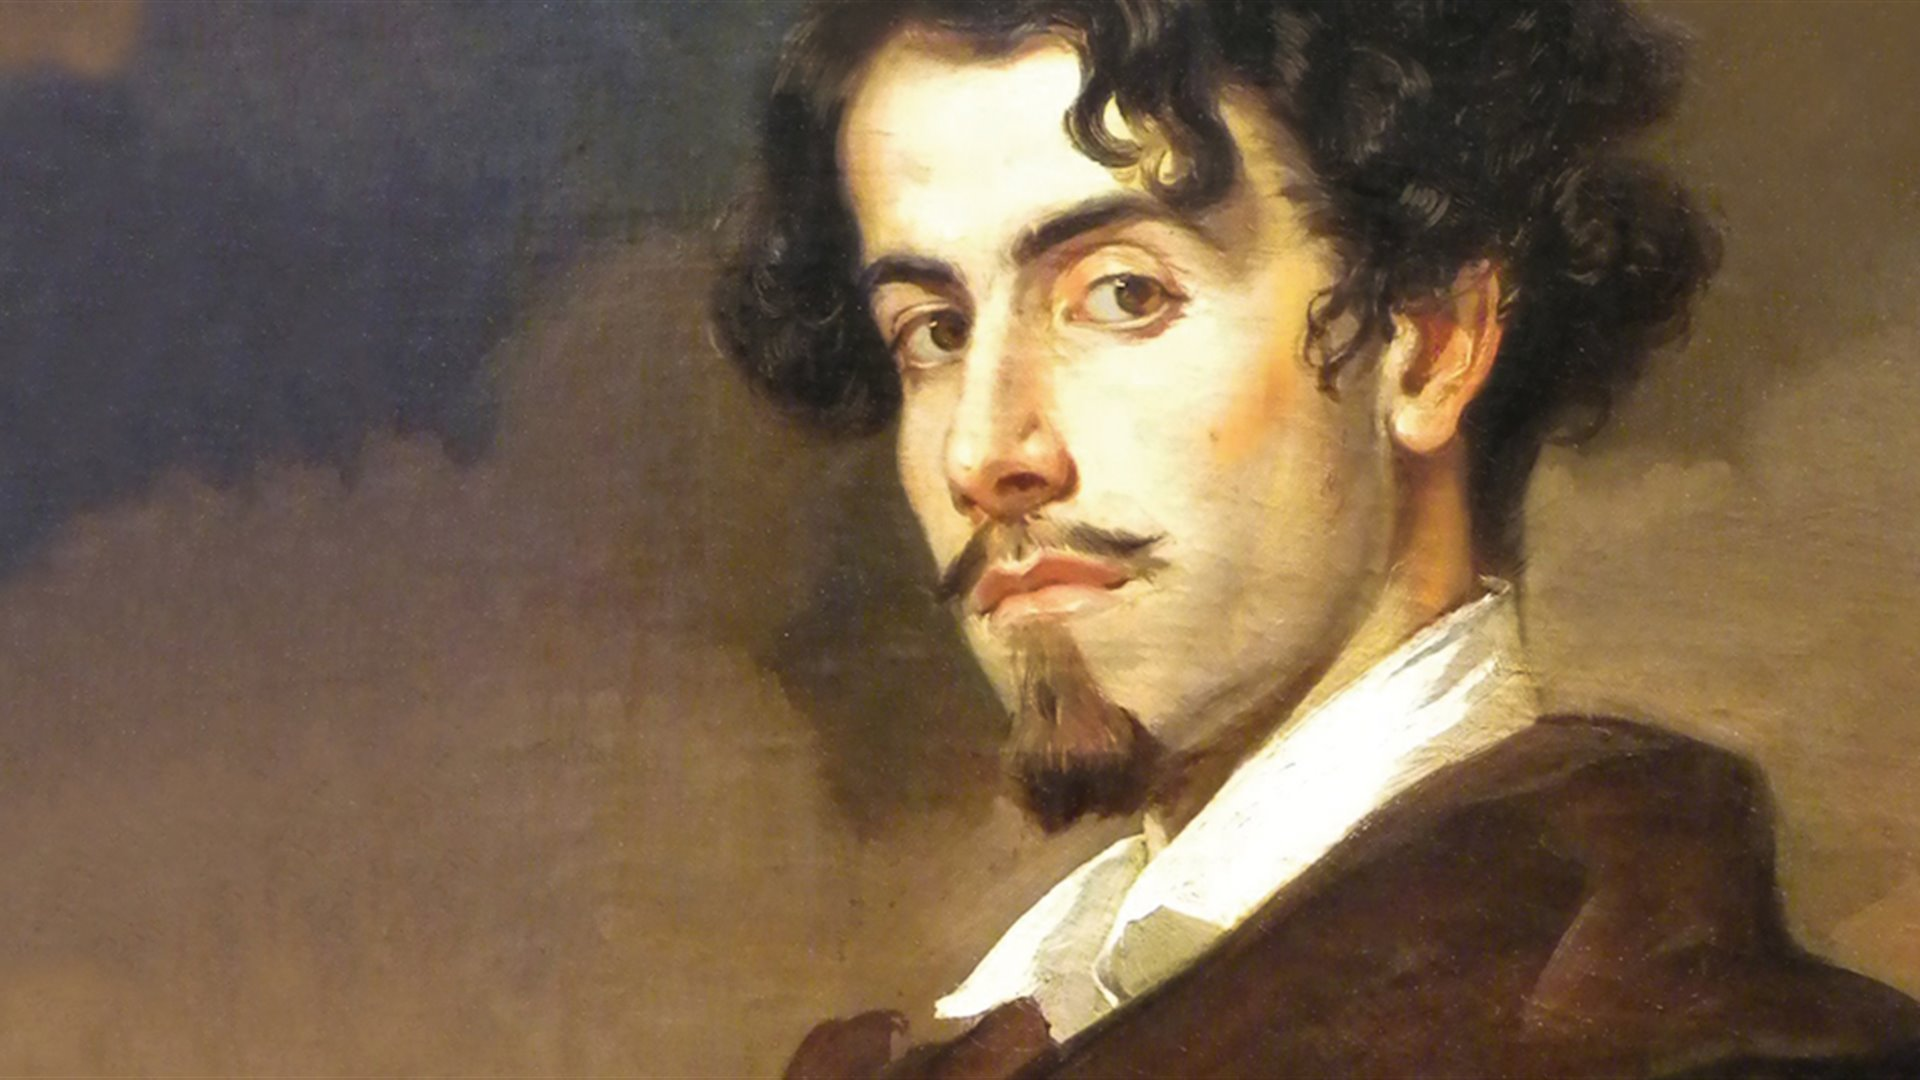 Gustavo Adolfo Bécquer and the Dialogue of the Arts